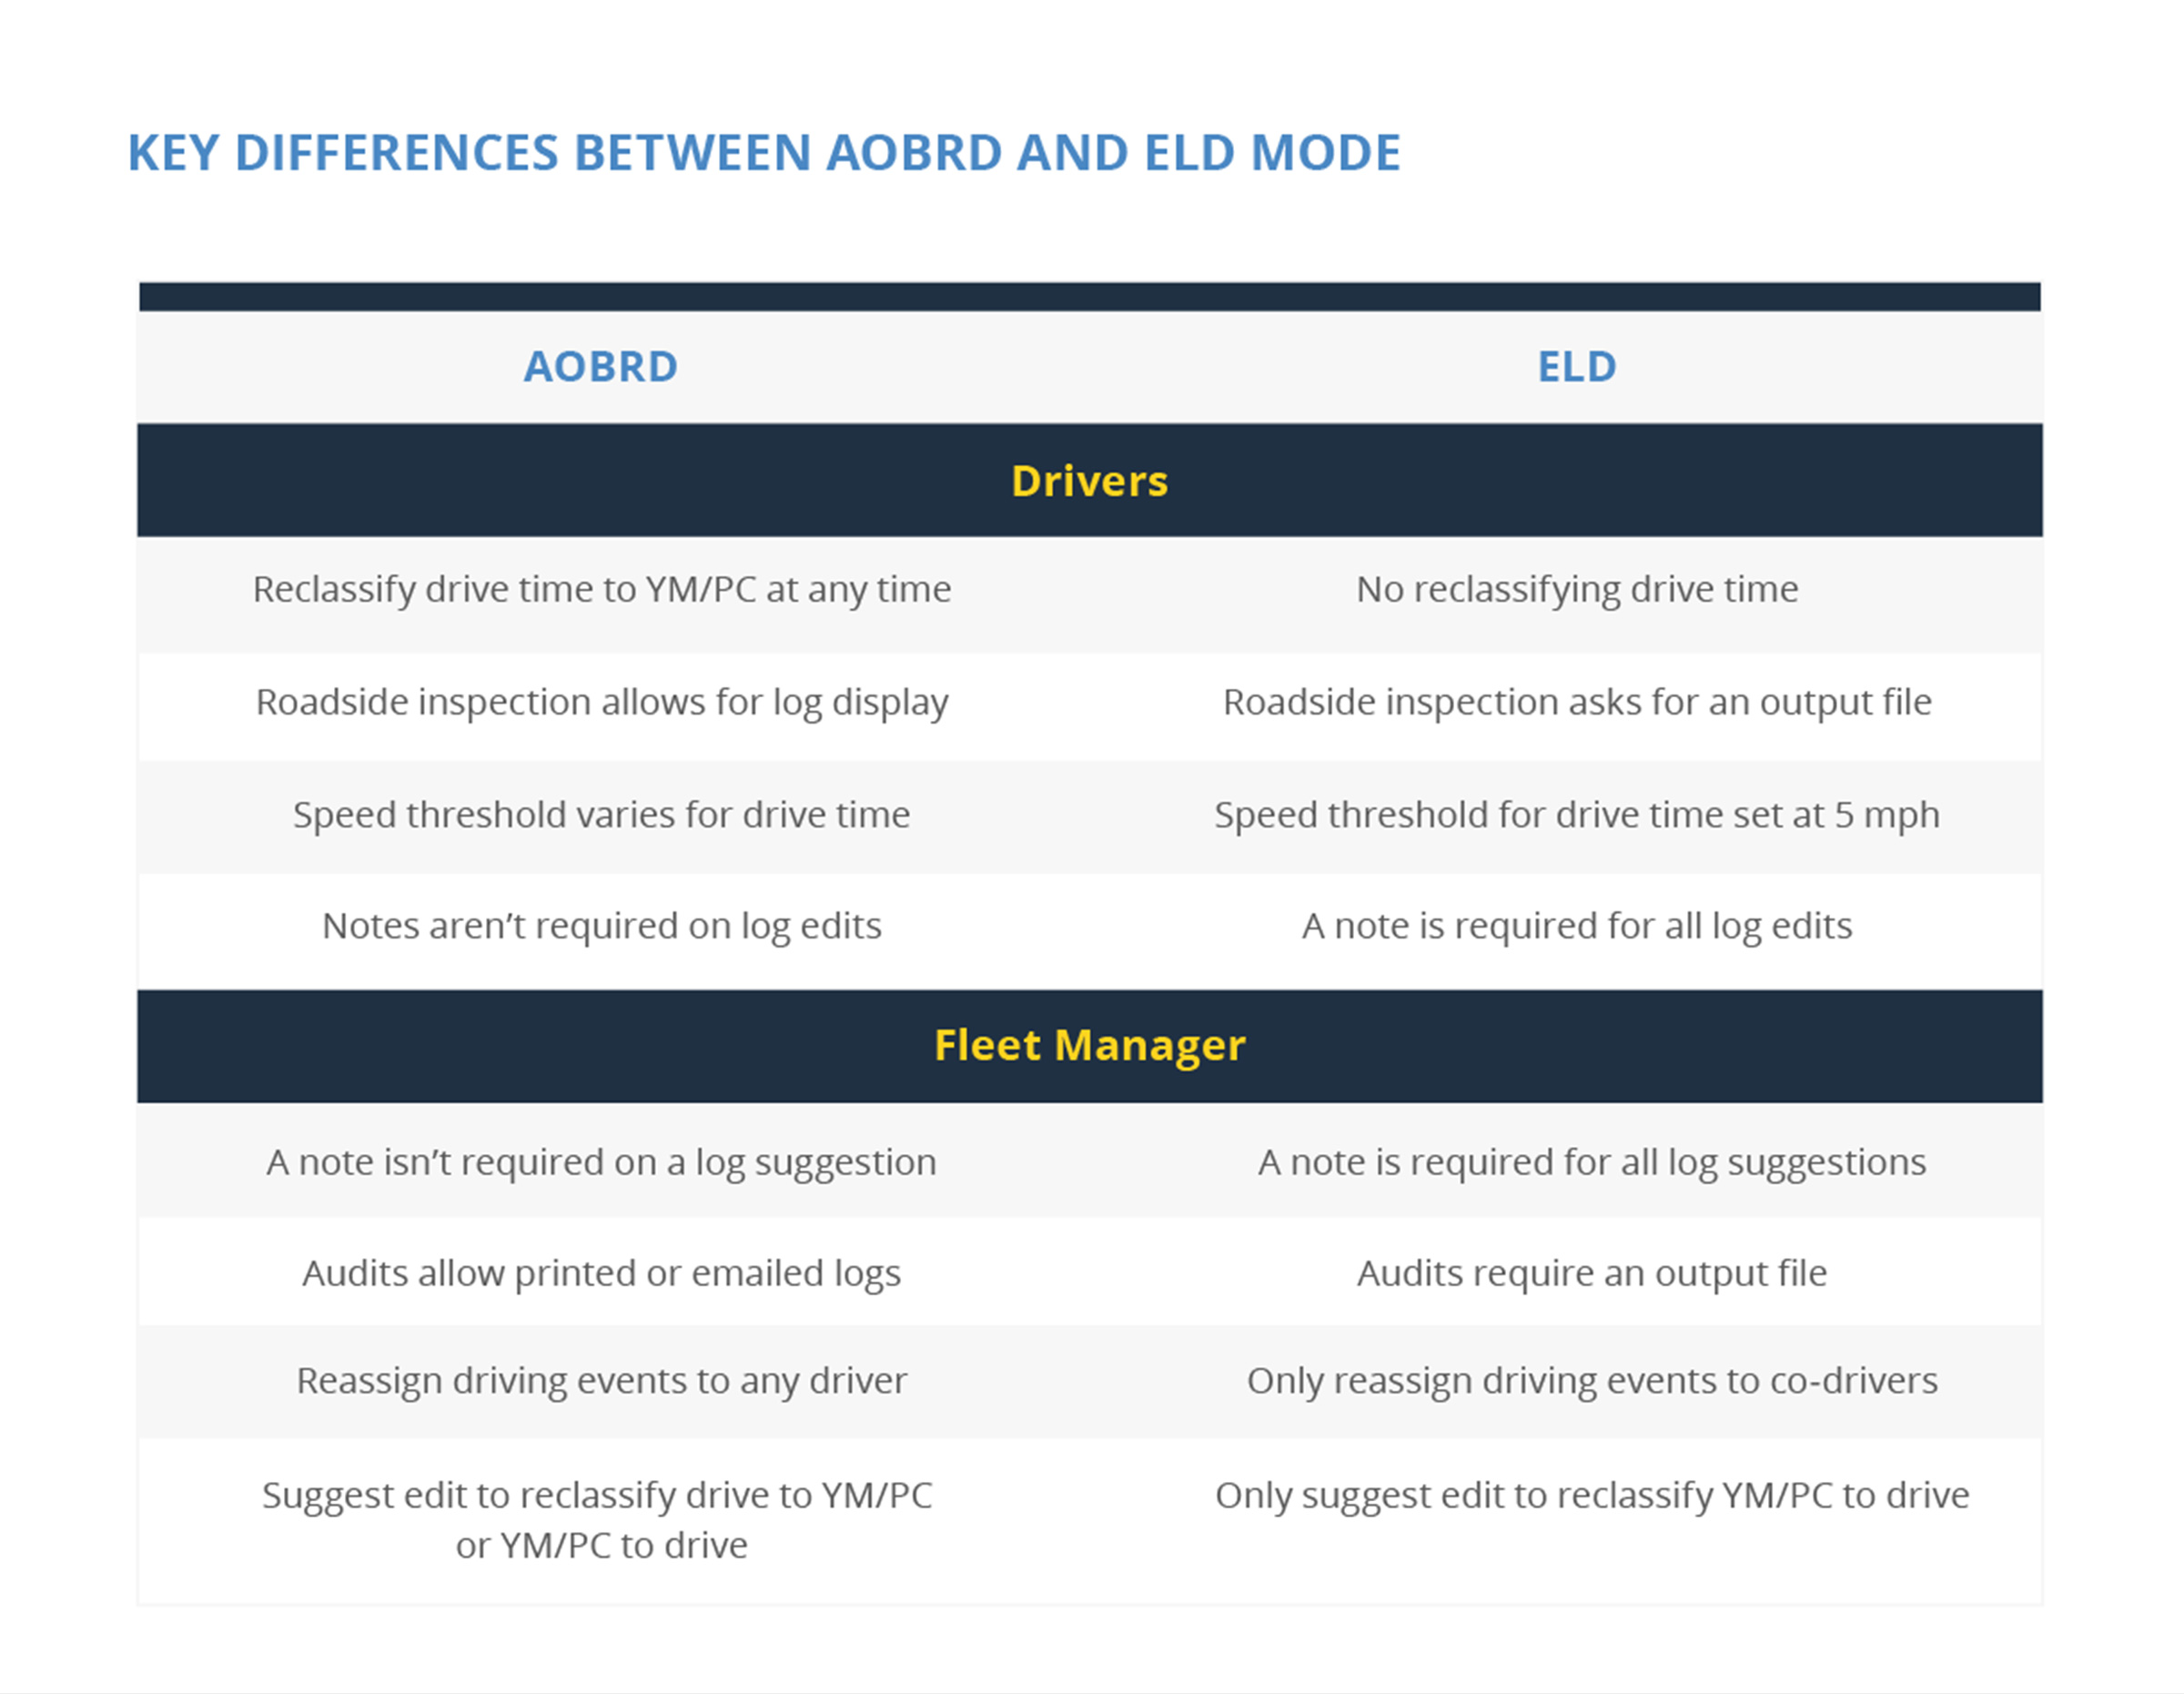 Differences between ELD and AOBRD modes